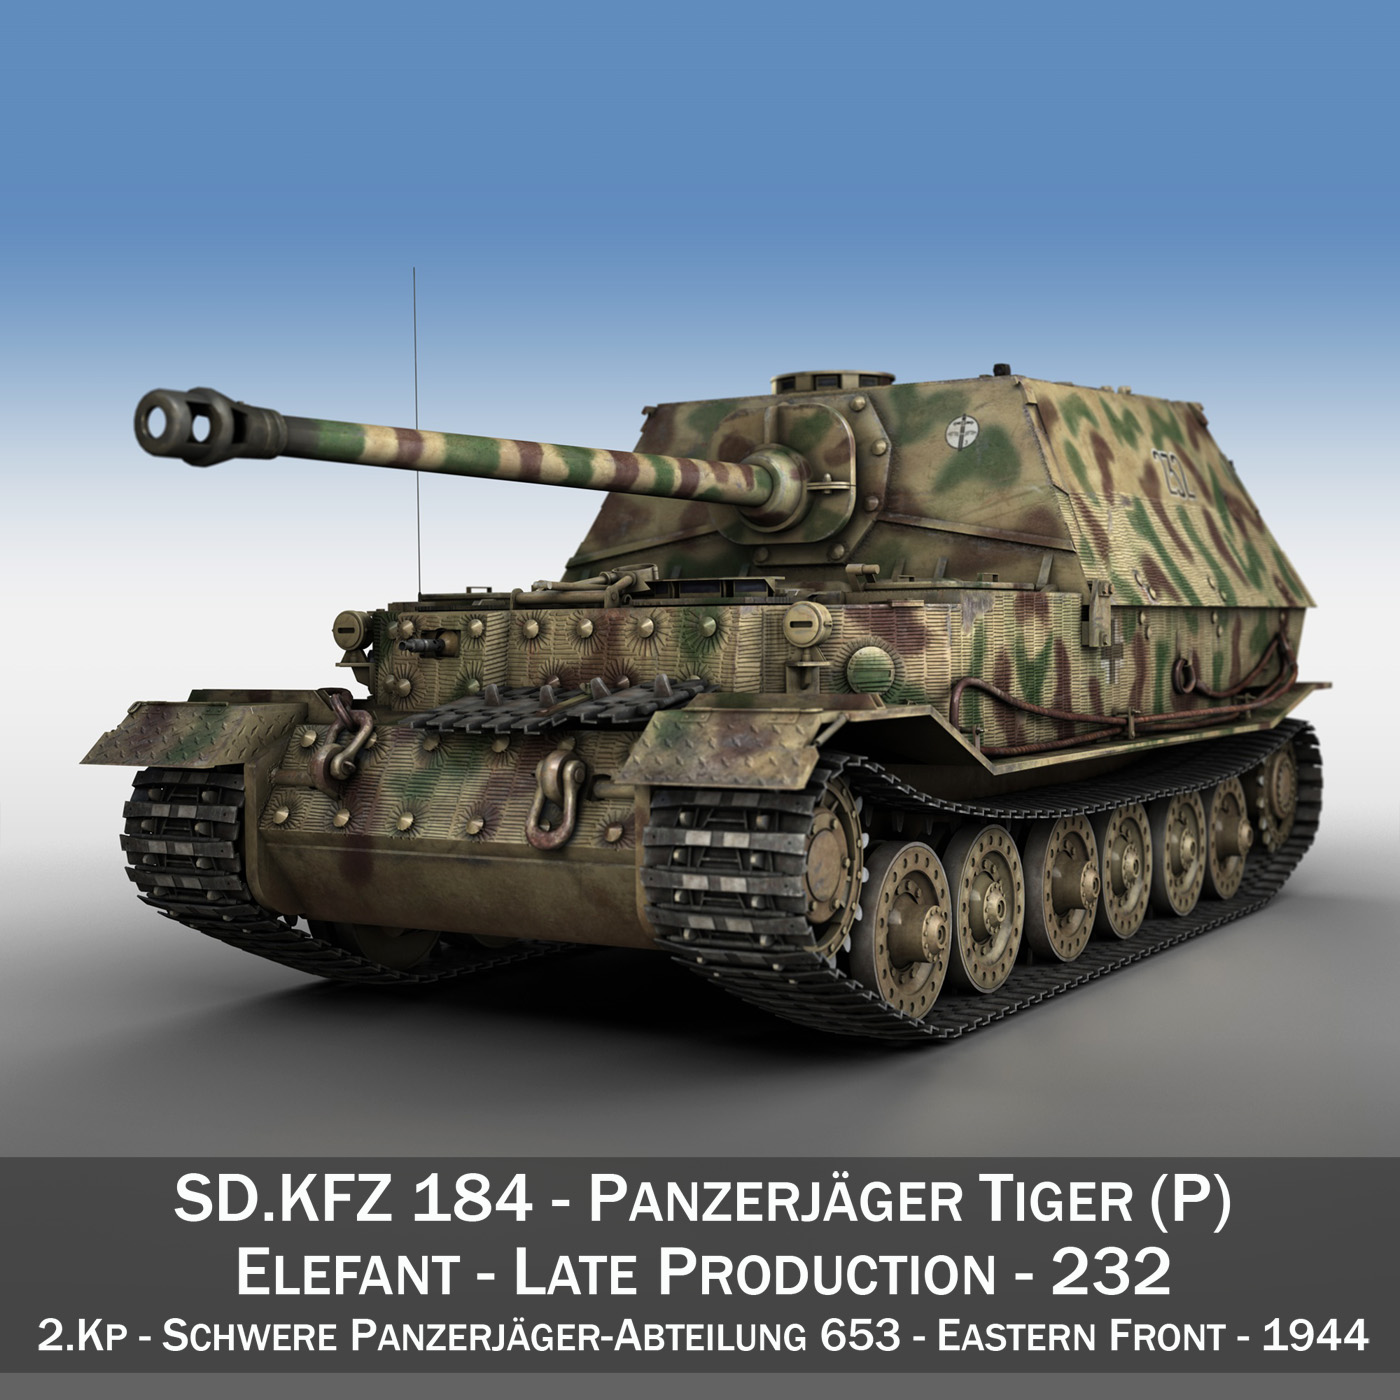 elefant tank destroyer – tiger (p) – 232 3d model 3ds fbx c4d lwo obj 293339